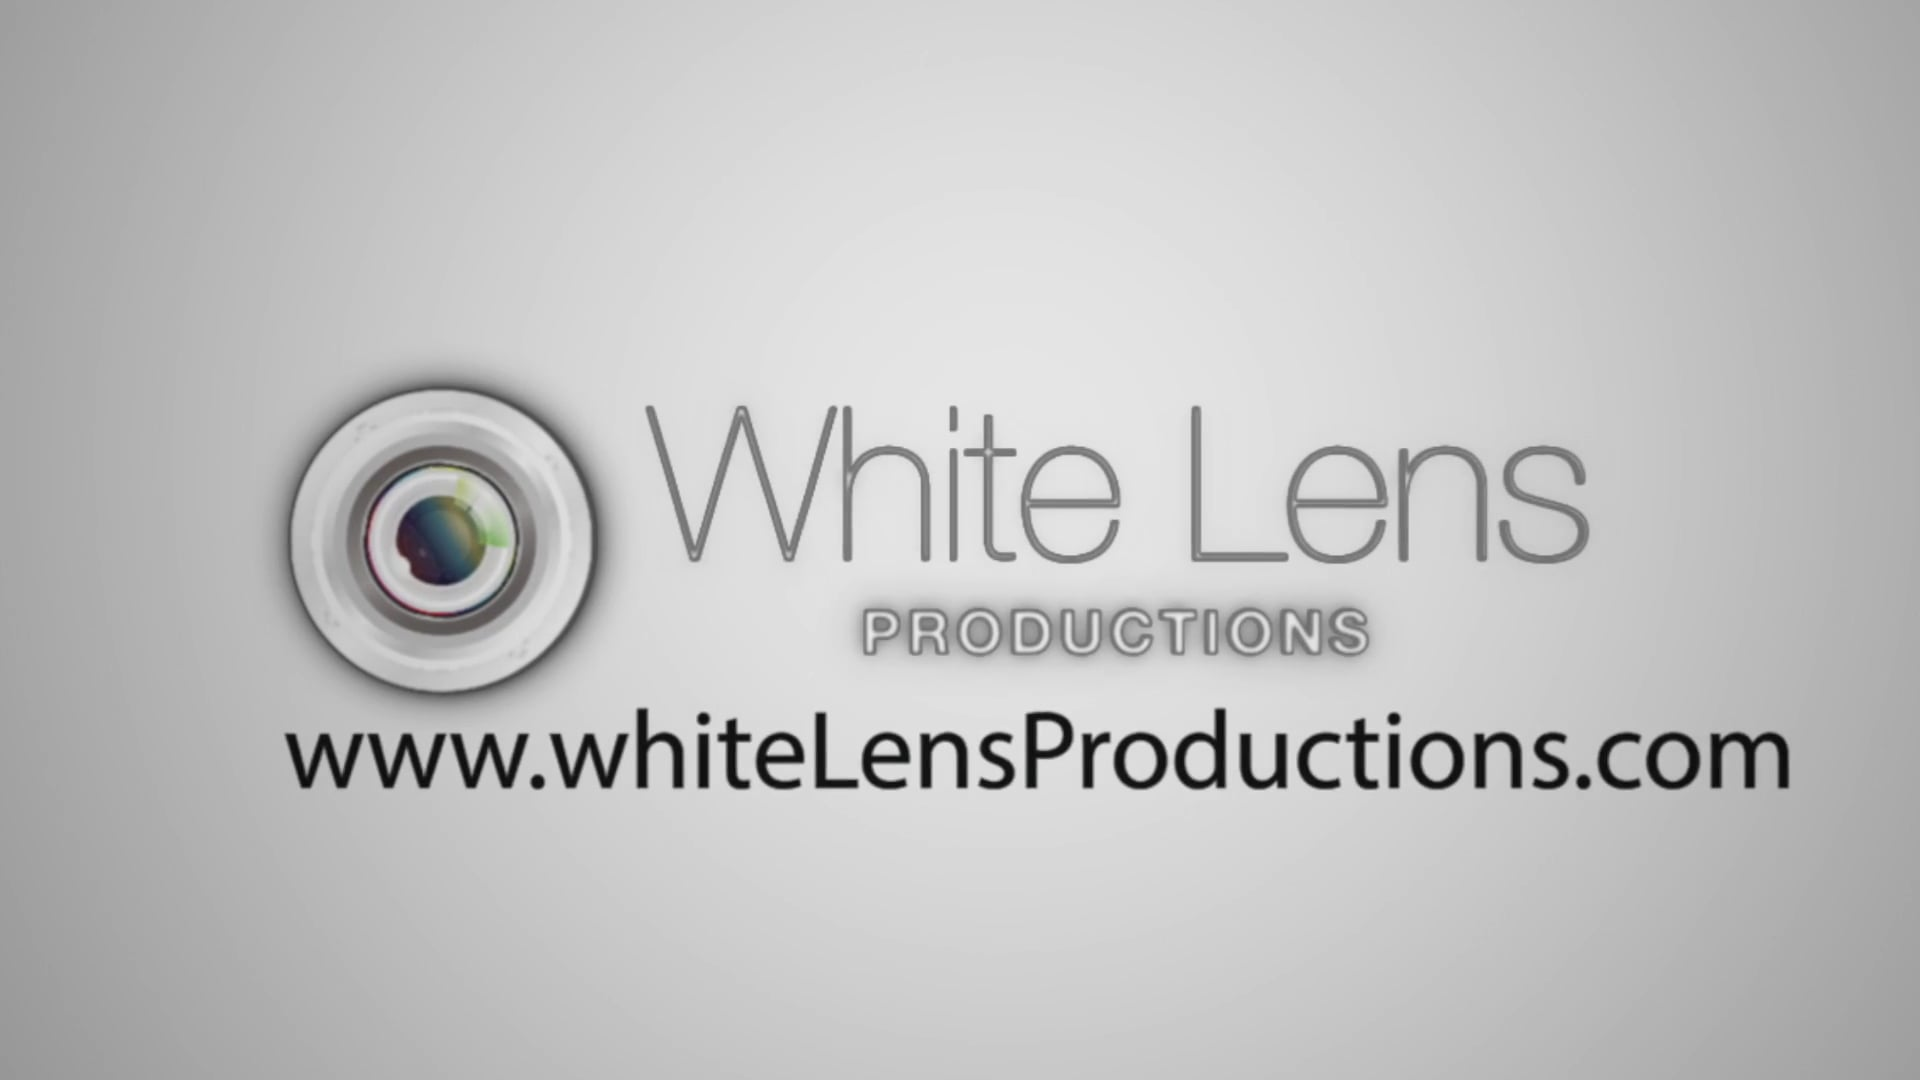 White lens Productions demo